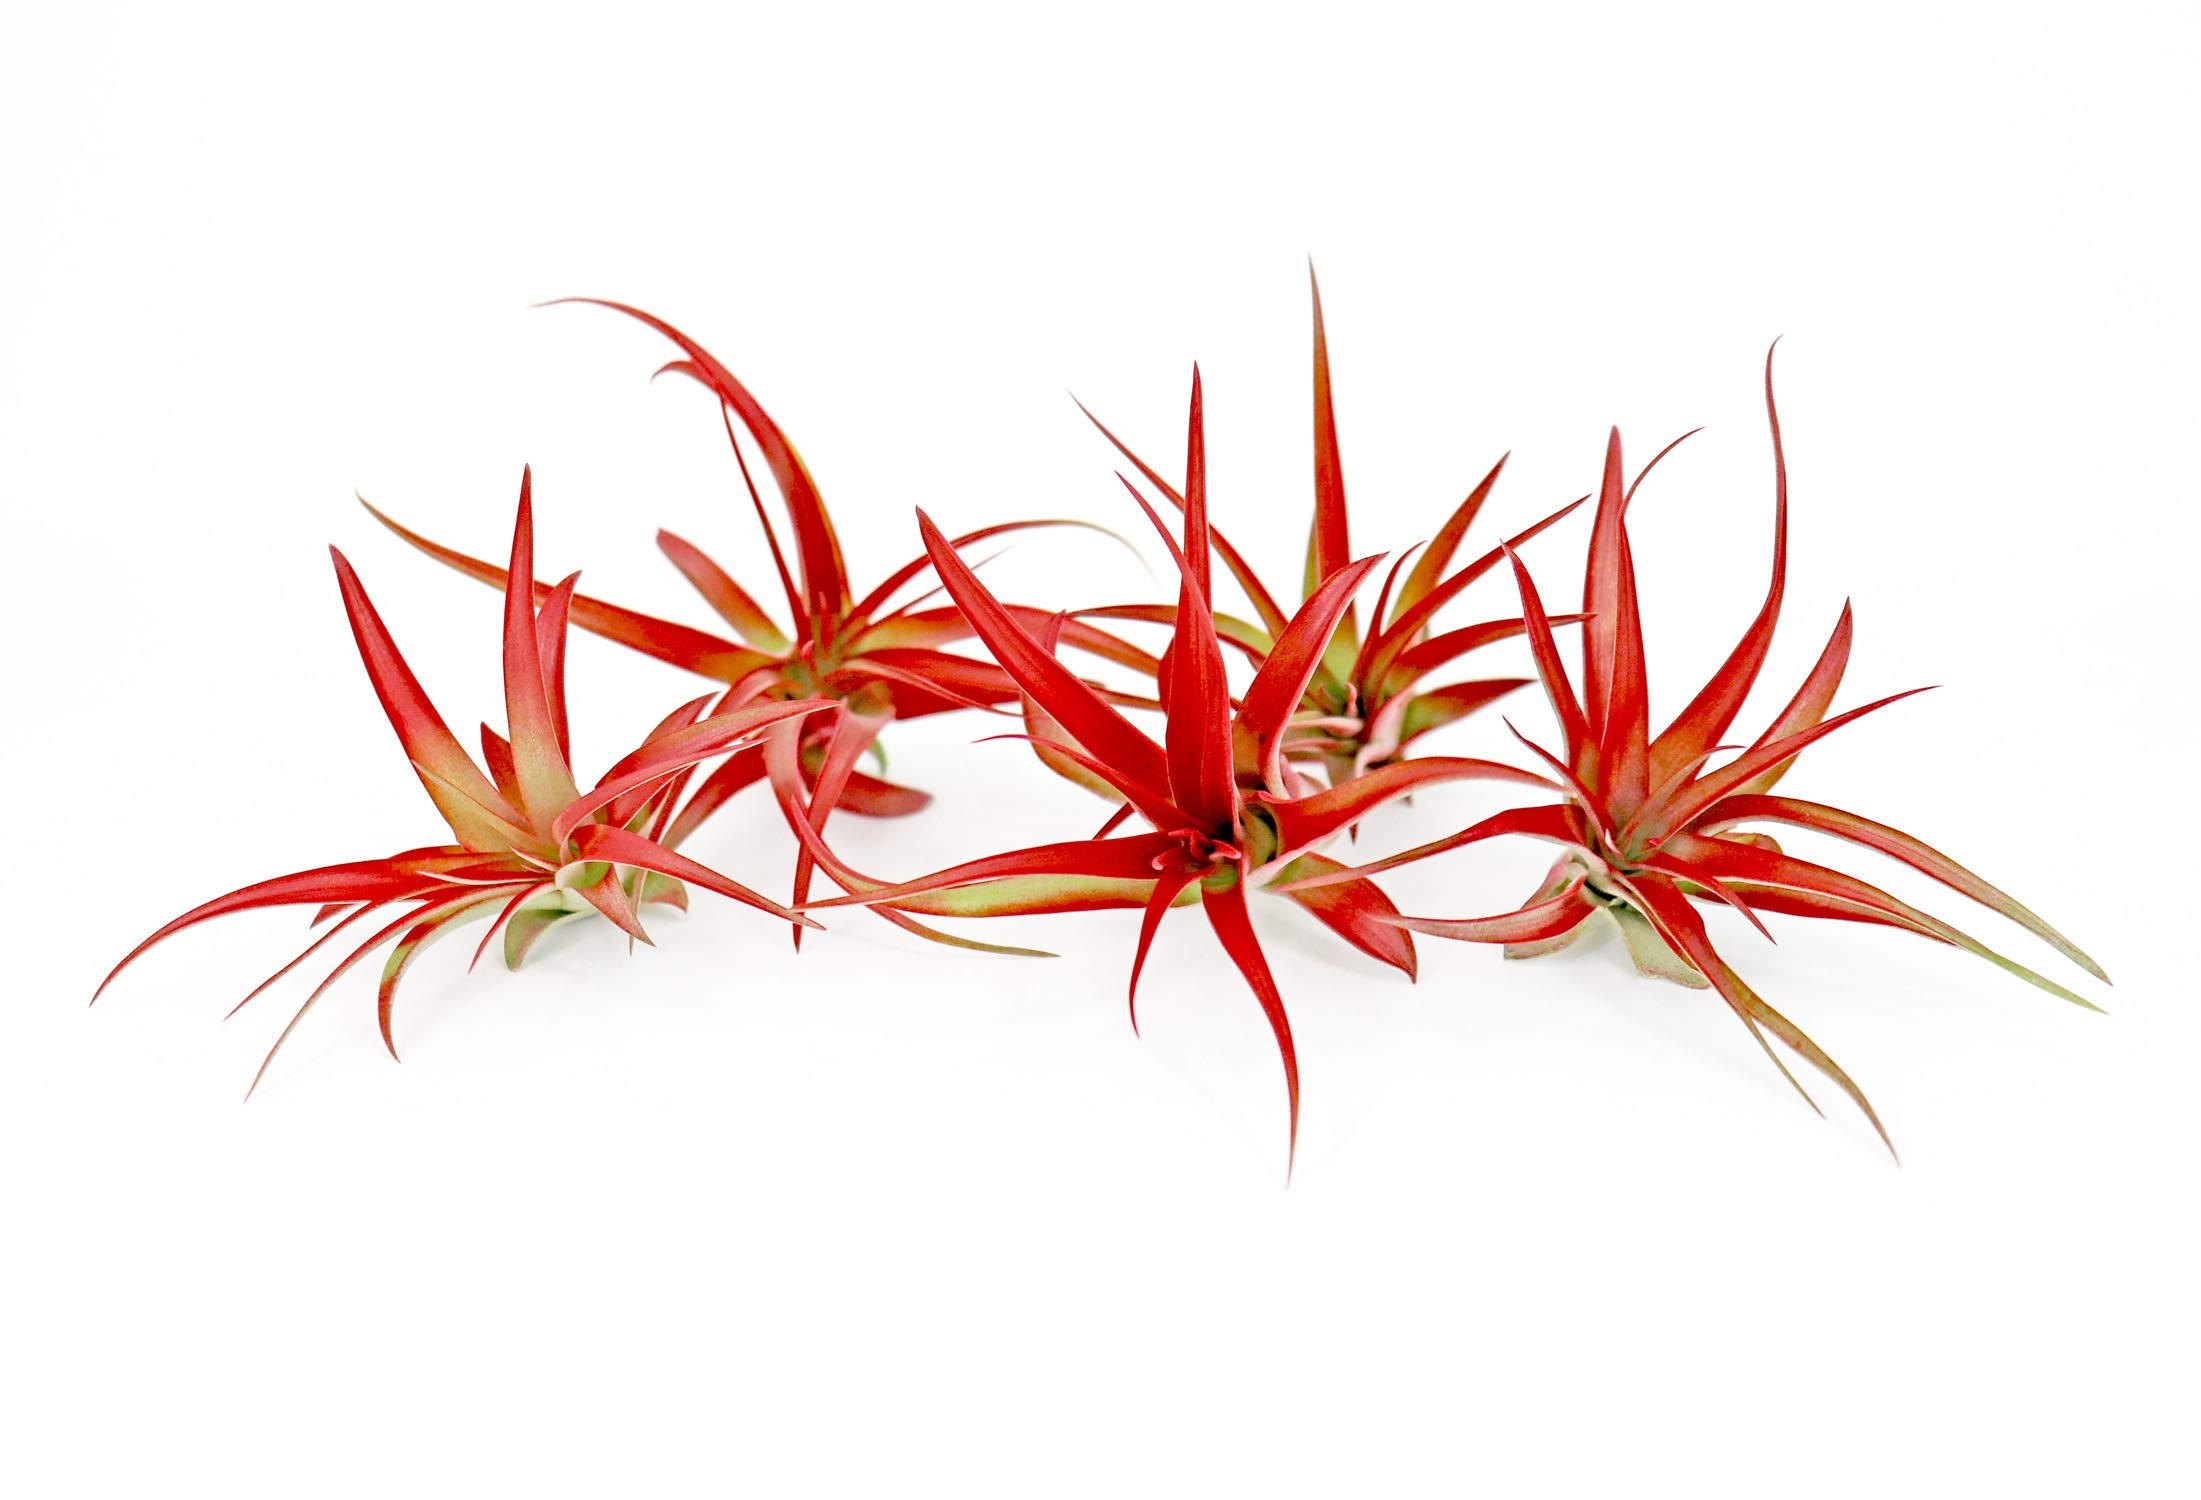 5 Live Air Plants | Bright Red Tillandsia Air Plant Pack | Colorful Indoor Plants | Real Houseplants | Easy Terrarium Decor Kit by Plants for Pets by Plants for Pets (Image #5)